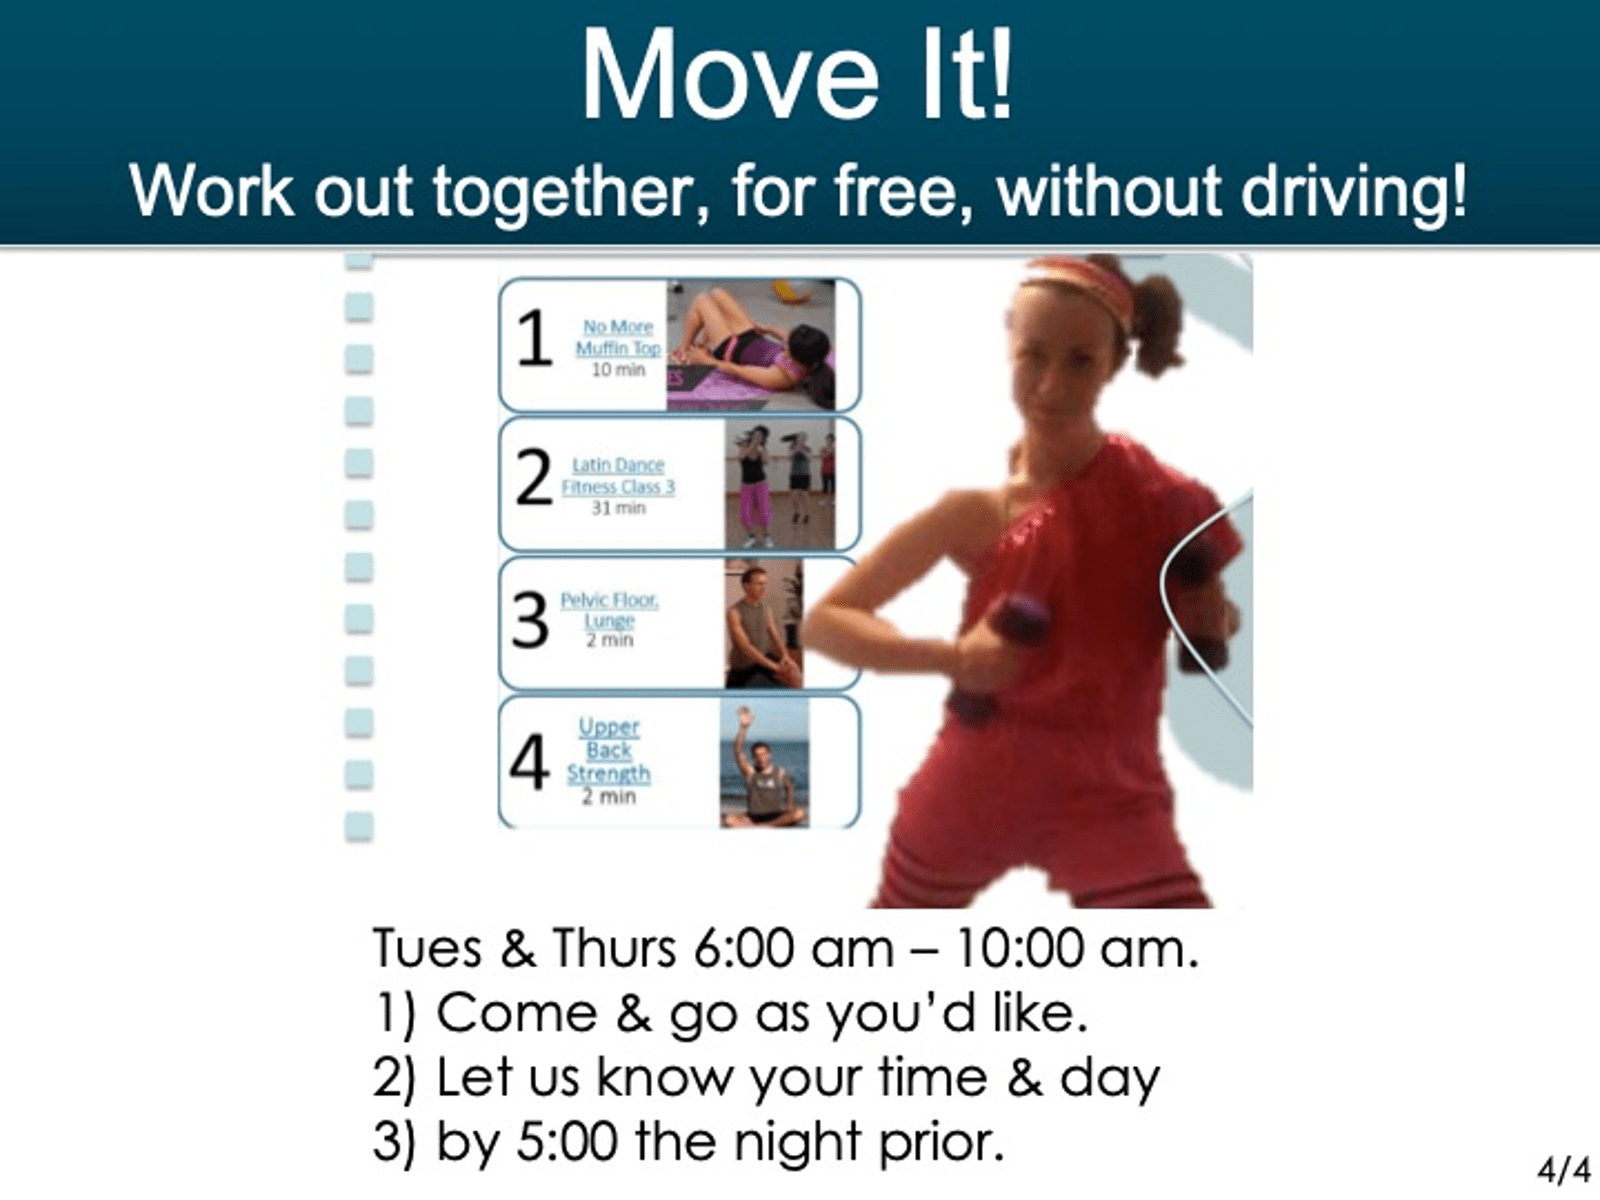 -We have 'Move It' workout sessions  -you can do WITH US or ON YOUR OWN TIME! -Click the picture to register. -We wanted to SAVE YOU MONEY and DRIVING TIME -We work out together in our webinar room -FOR FREE! -And kids can join too WITHOUT DAYCARE COSTS